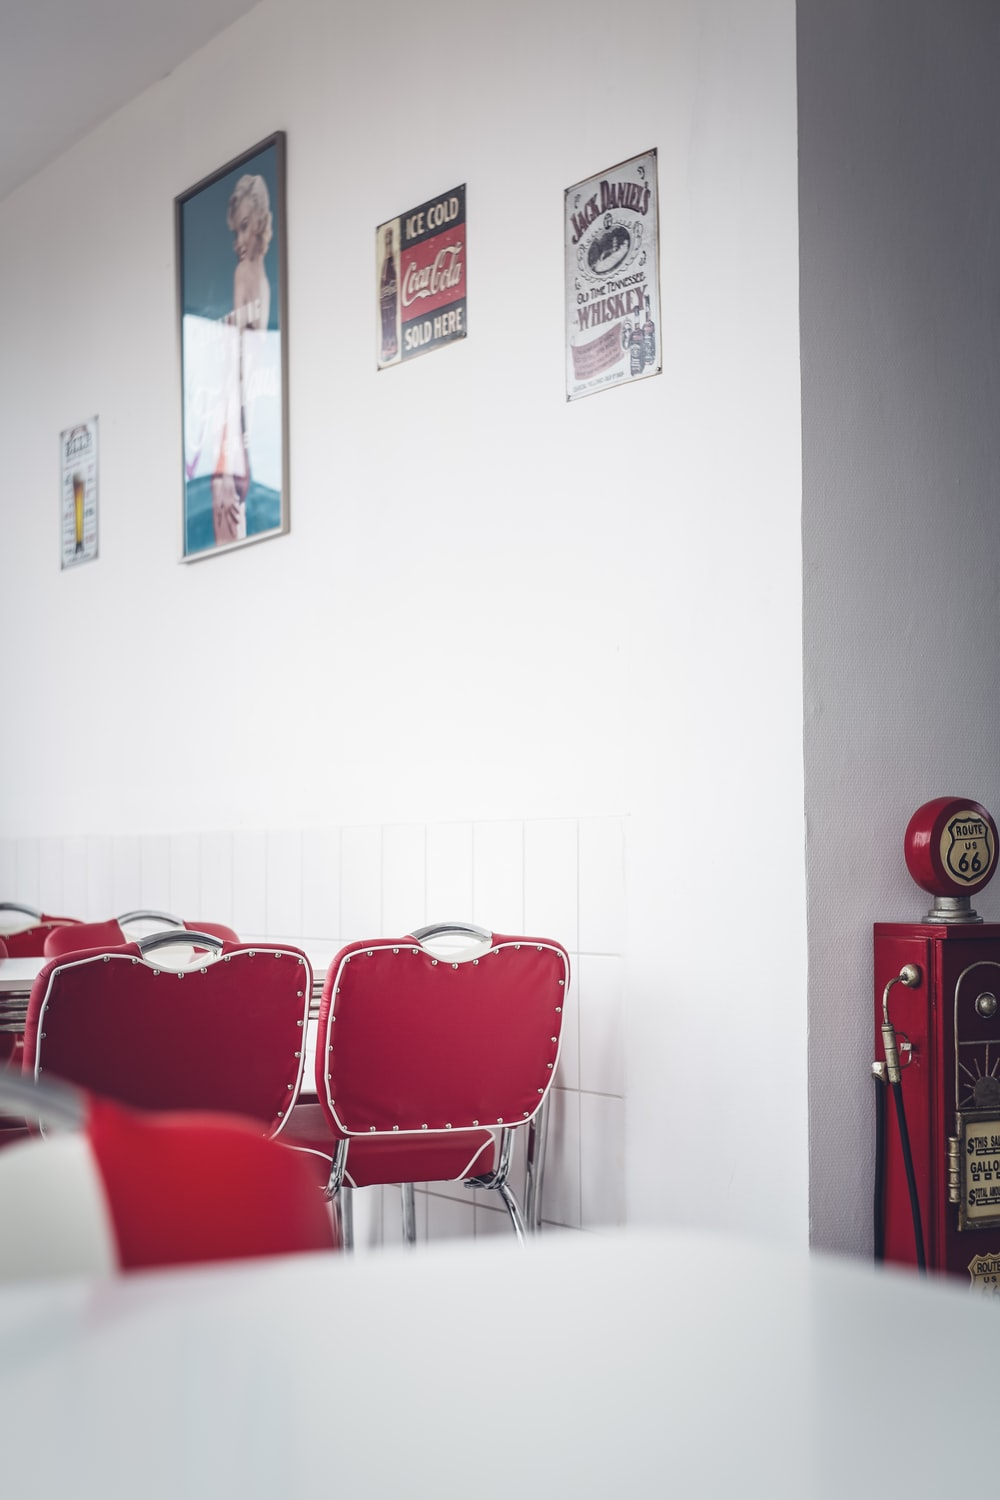 empty chairs beside wall with posters and signs